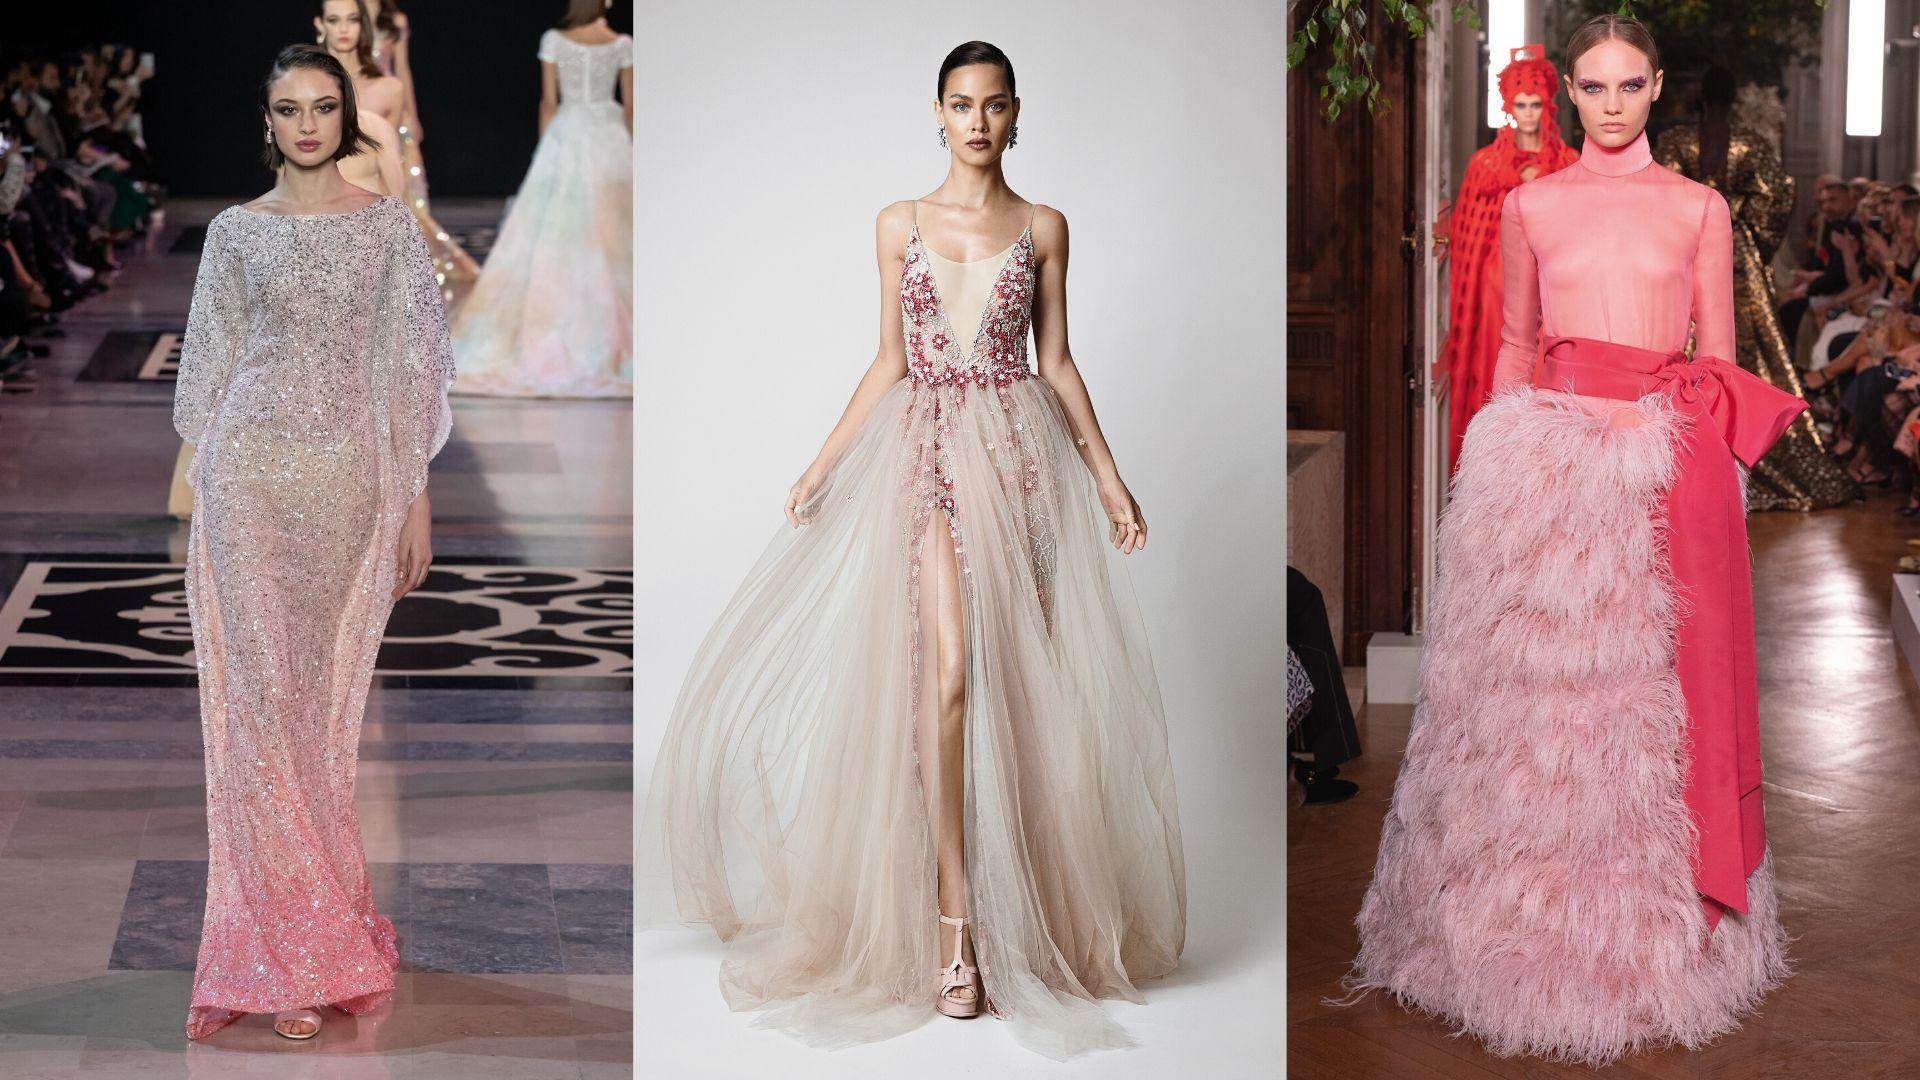 9 Ways To Nail A Rose-Hued Bridal Look